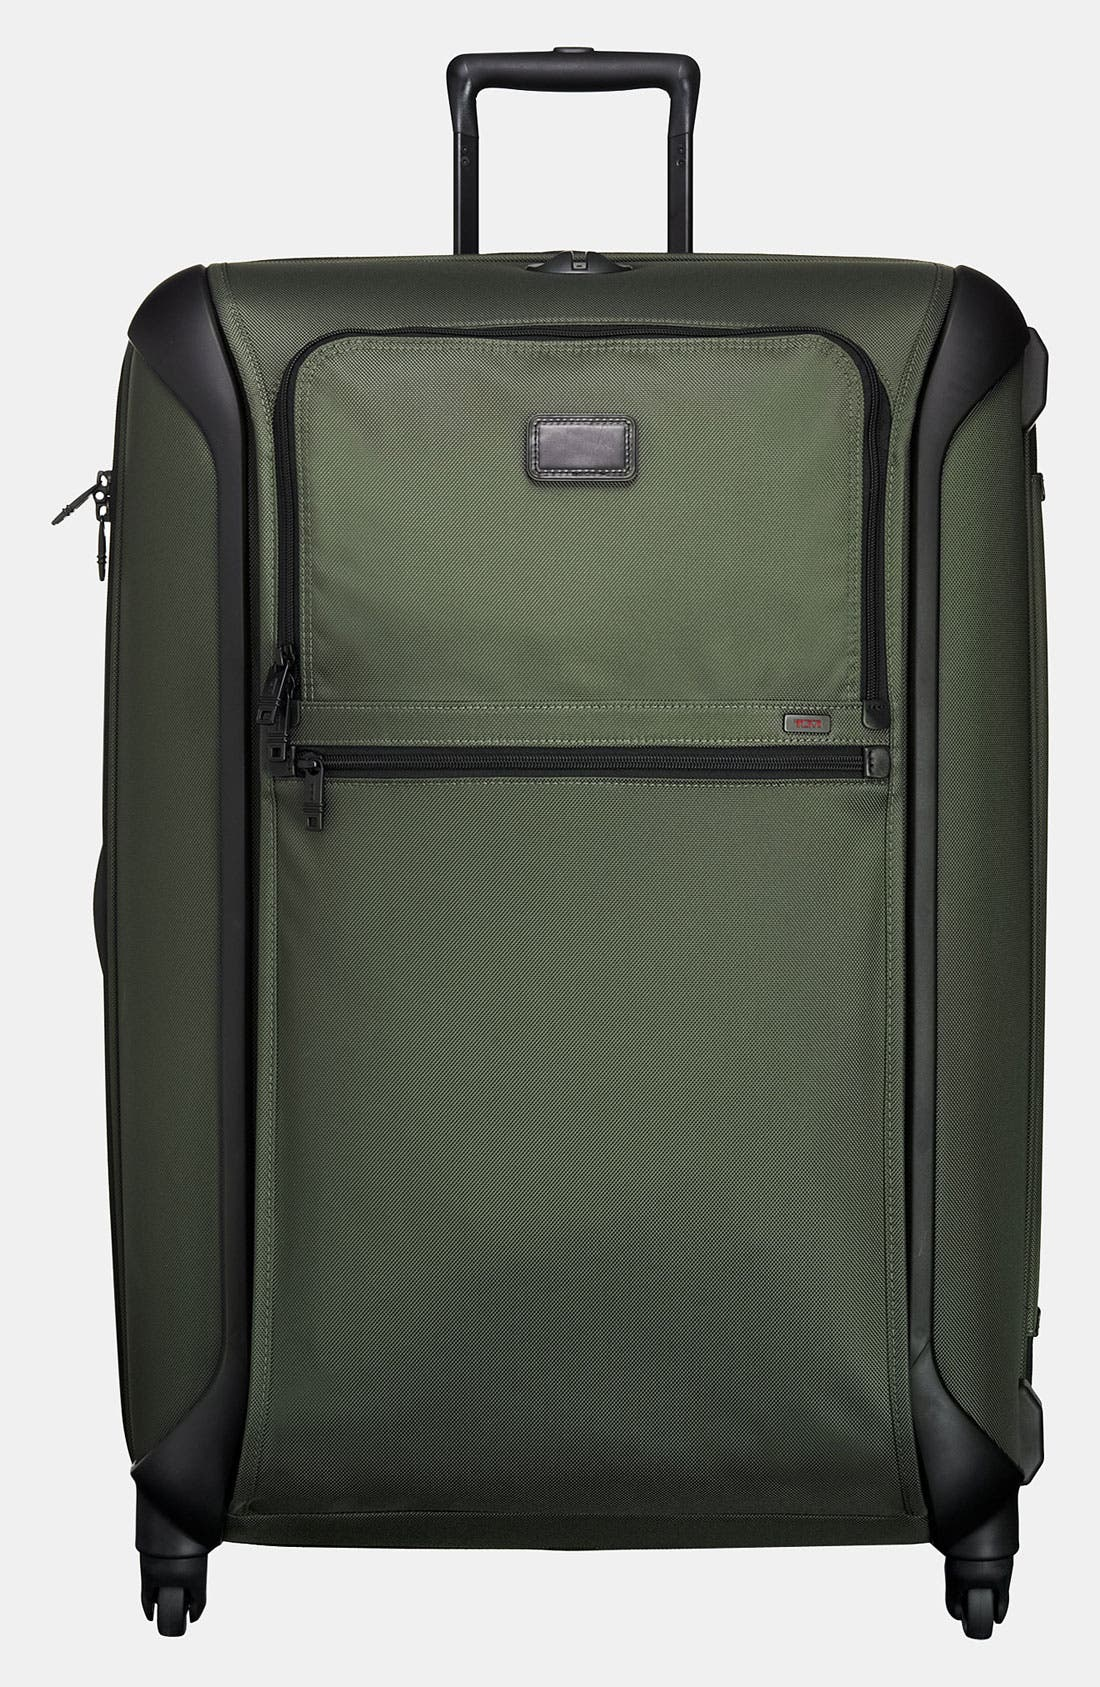 Alternate Image 1 Selected - Tumi 'Alpha' Lightweight Extended Trip Packing Case (32 Inch)